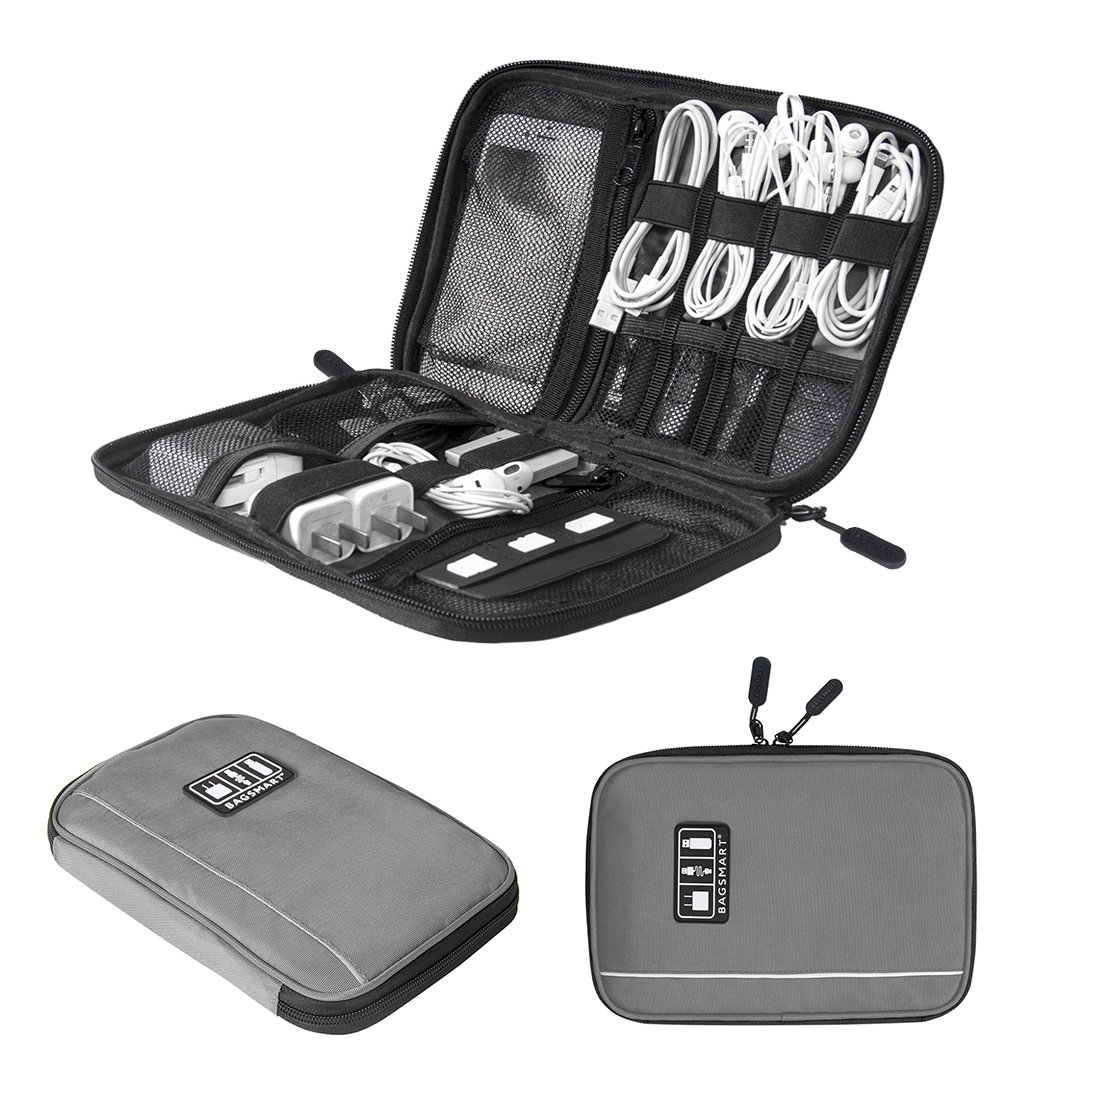 BAGSMART Travel Universal Cable Organizer Electronics Accessories Cases For Various USB, Phone, Charger and Cable, Grey by BAGSMART (Image #1)